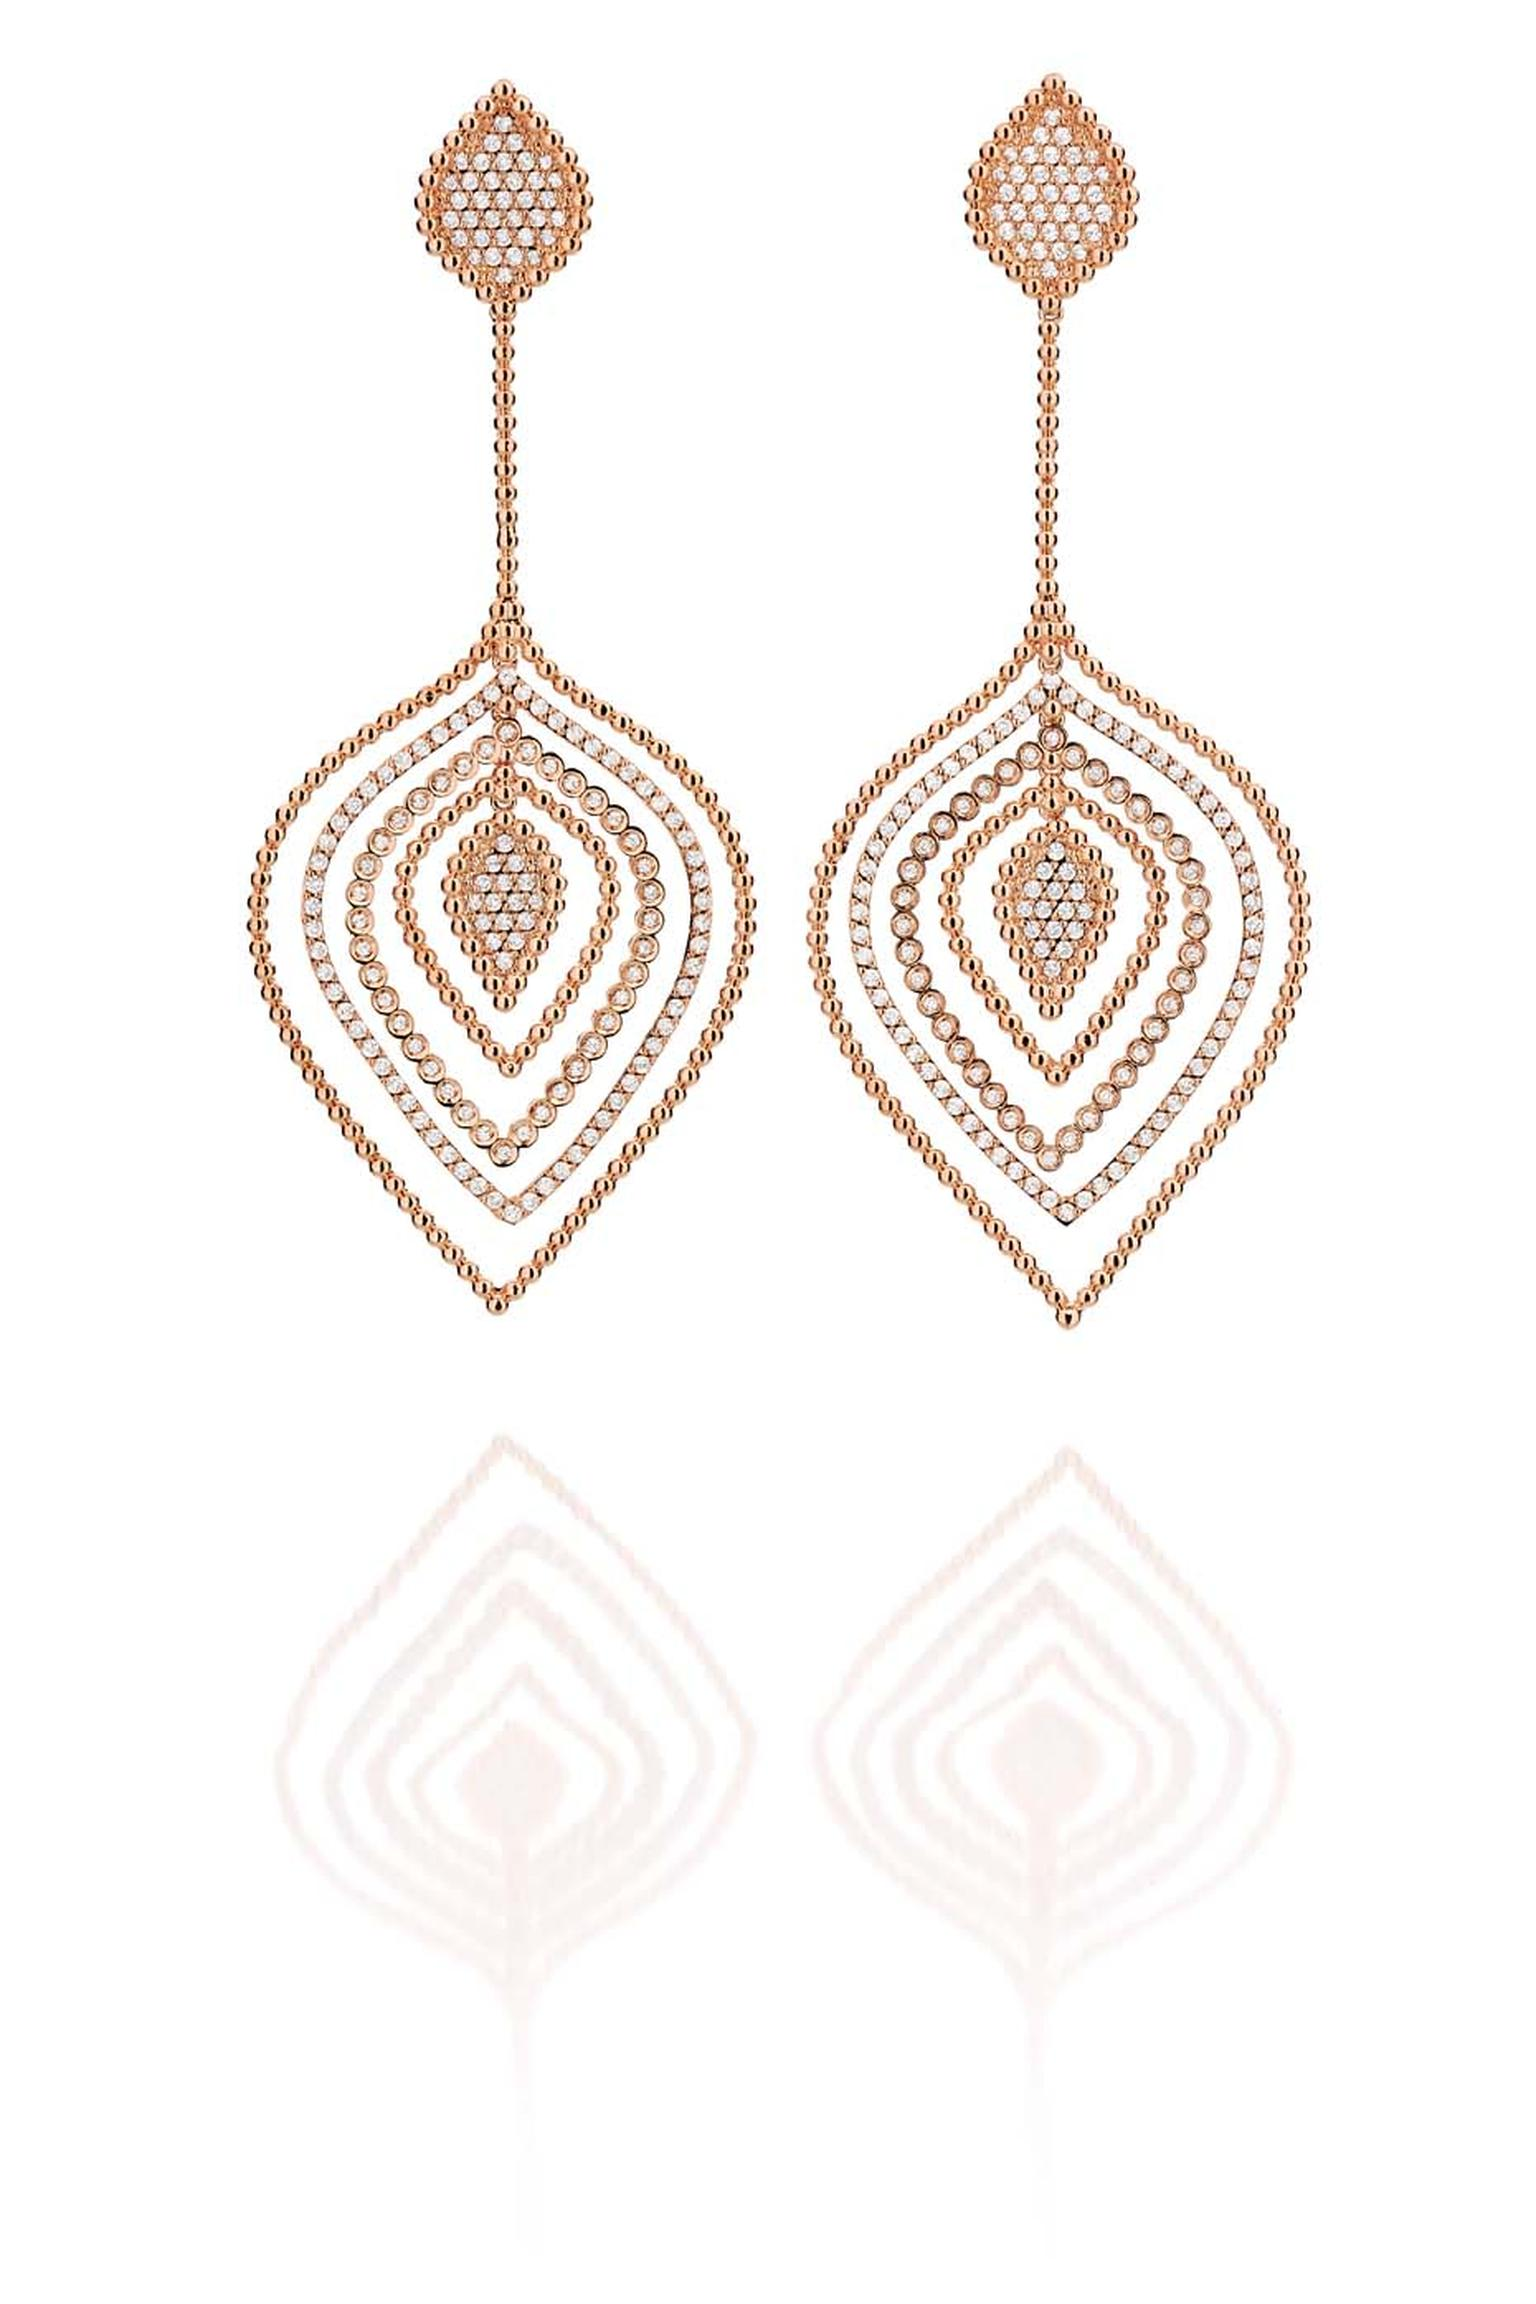 Carla Amorim Russia Collection Kremlin earrings in rose gold and diamonds, inspired by Moscow's famous government headquarters in Moscow